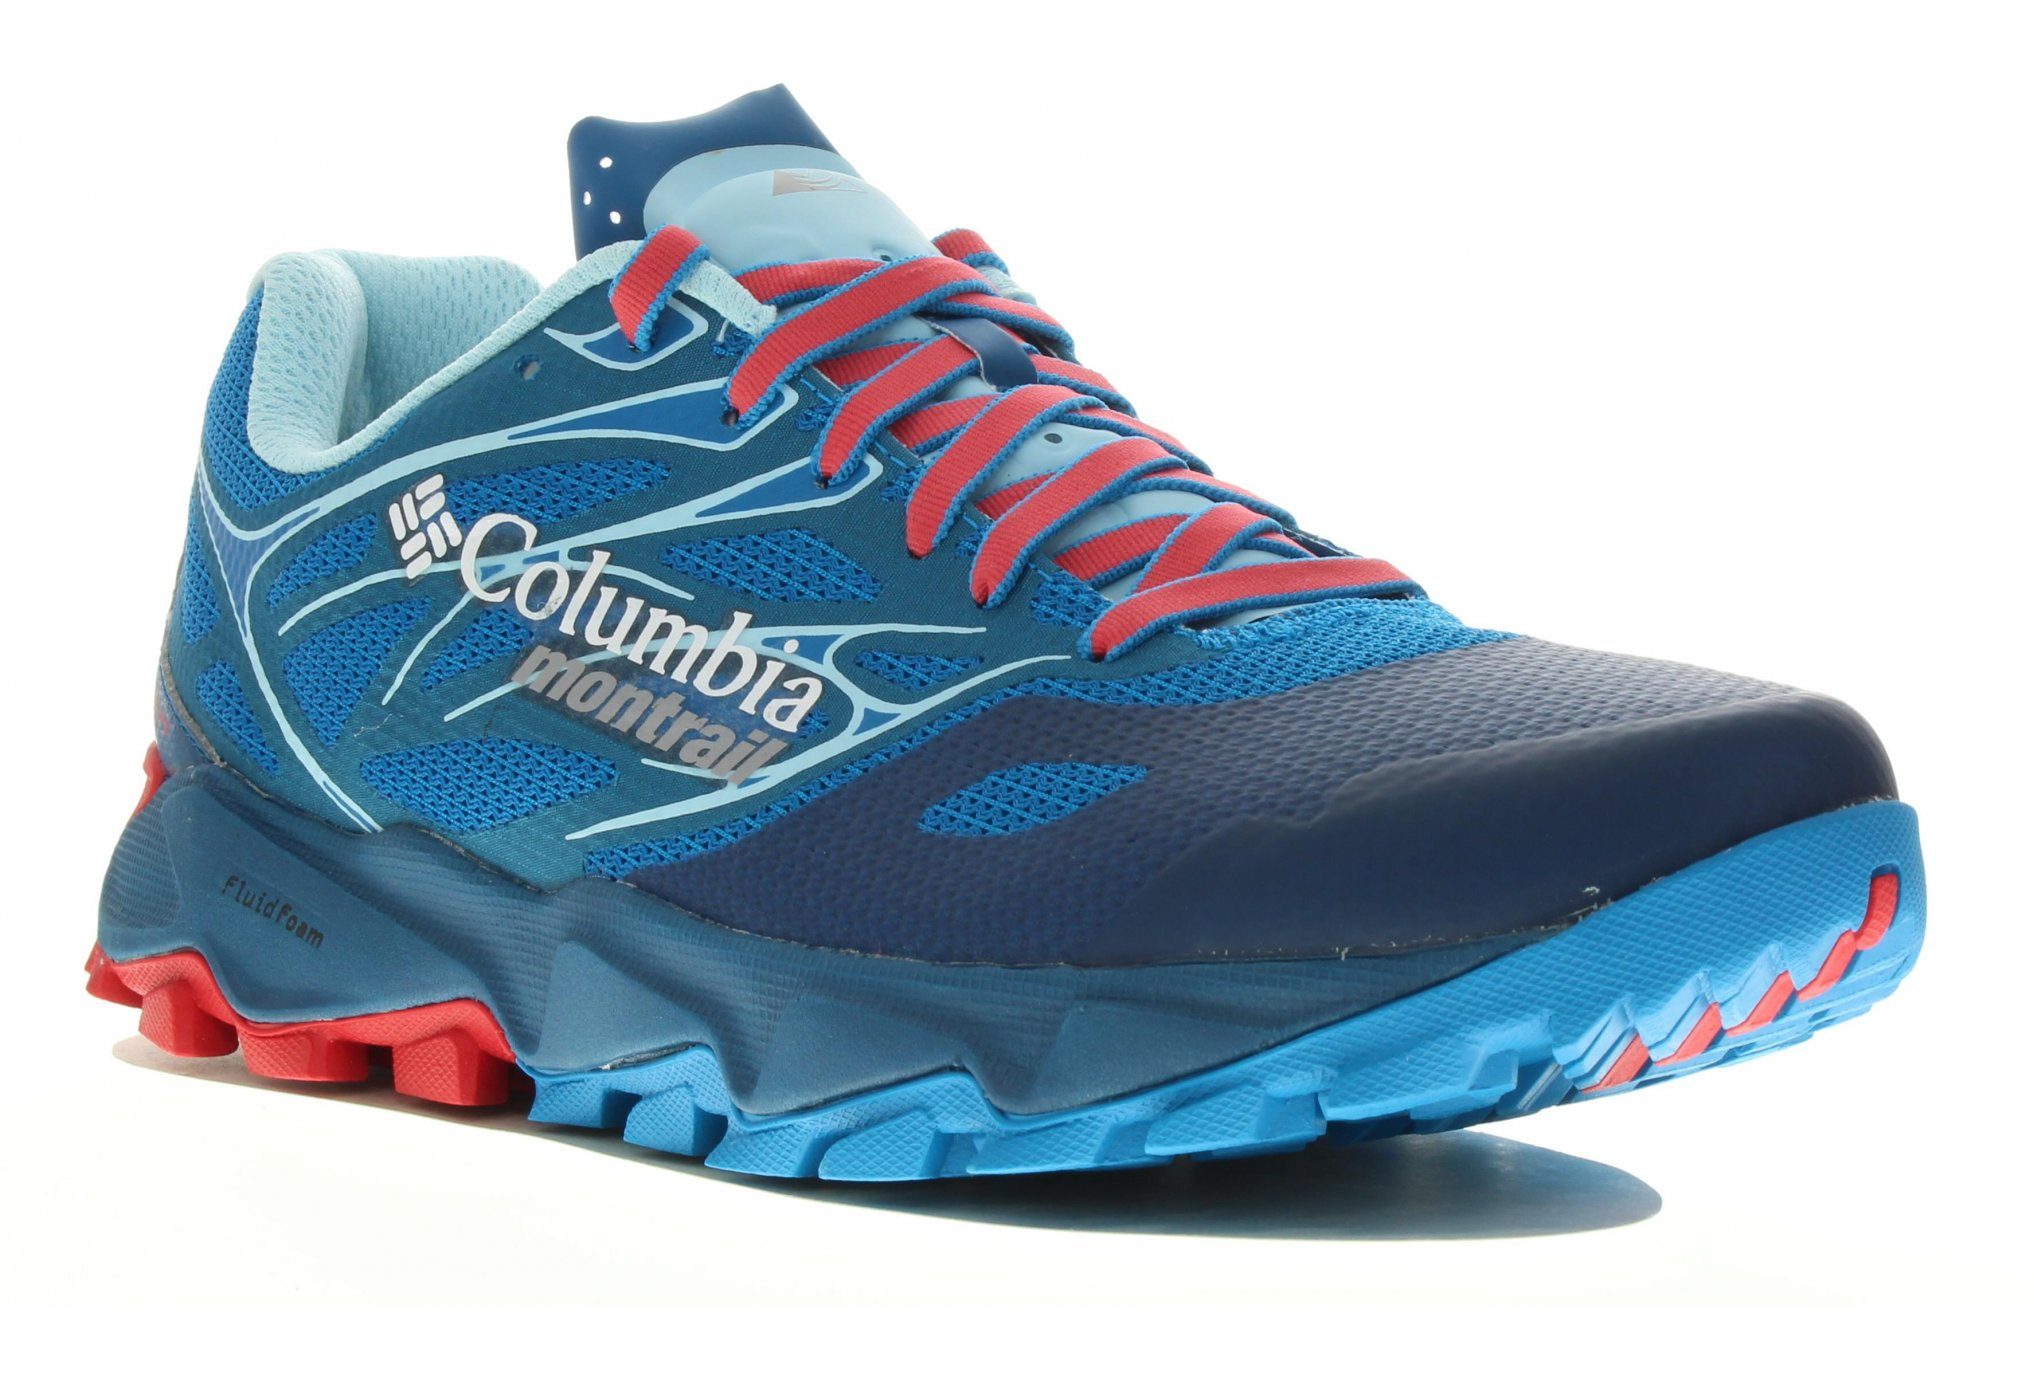 Columbia Montrail Trans Alps II F.K.T. W Chaussures running femme